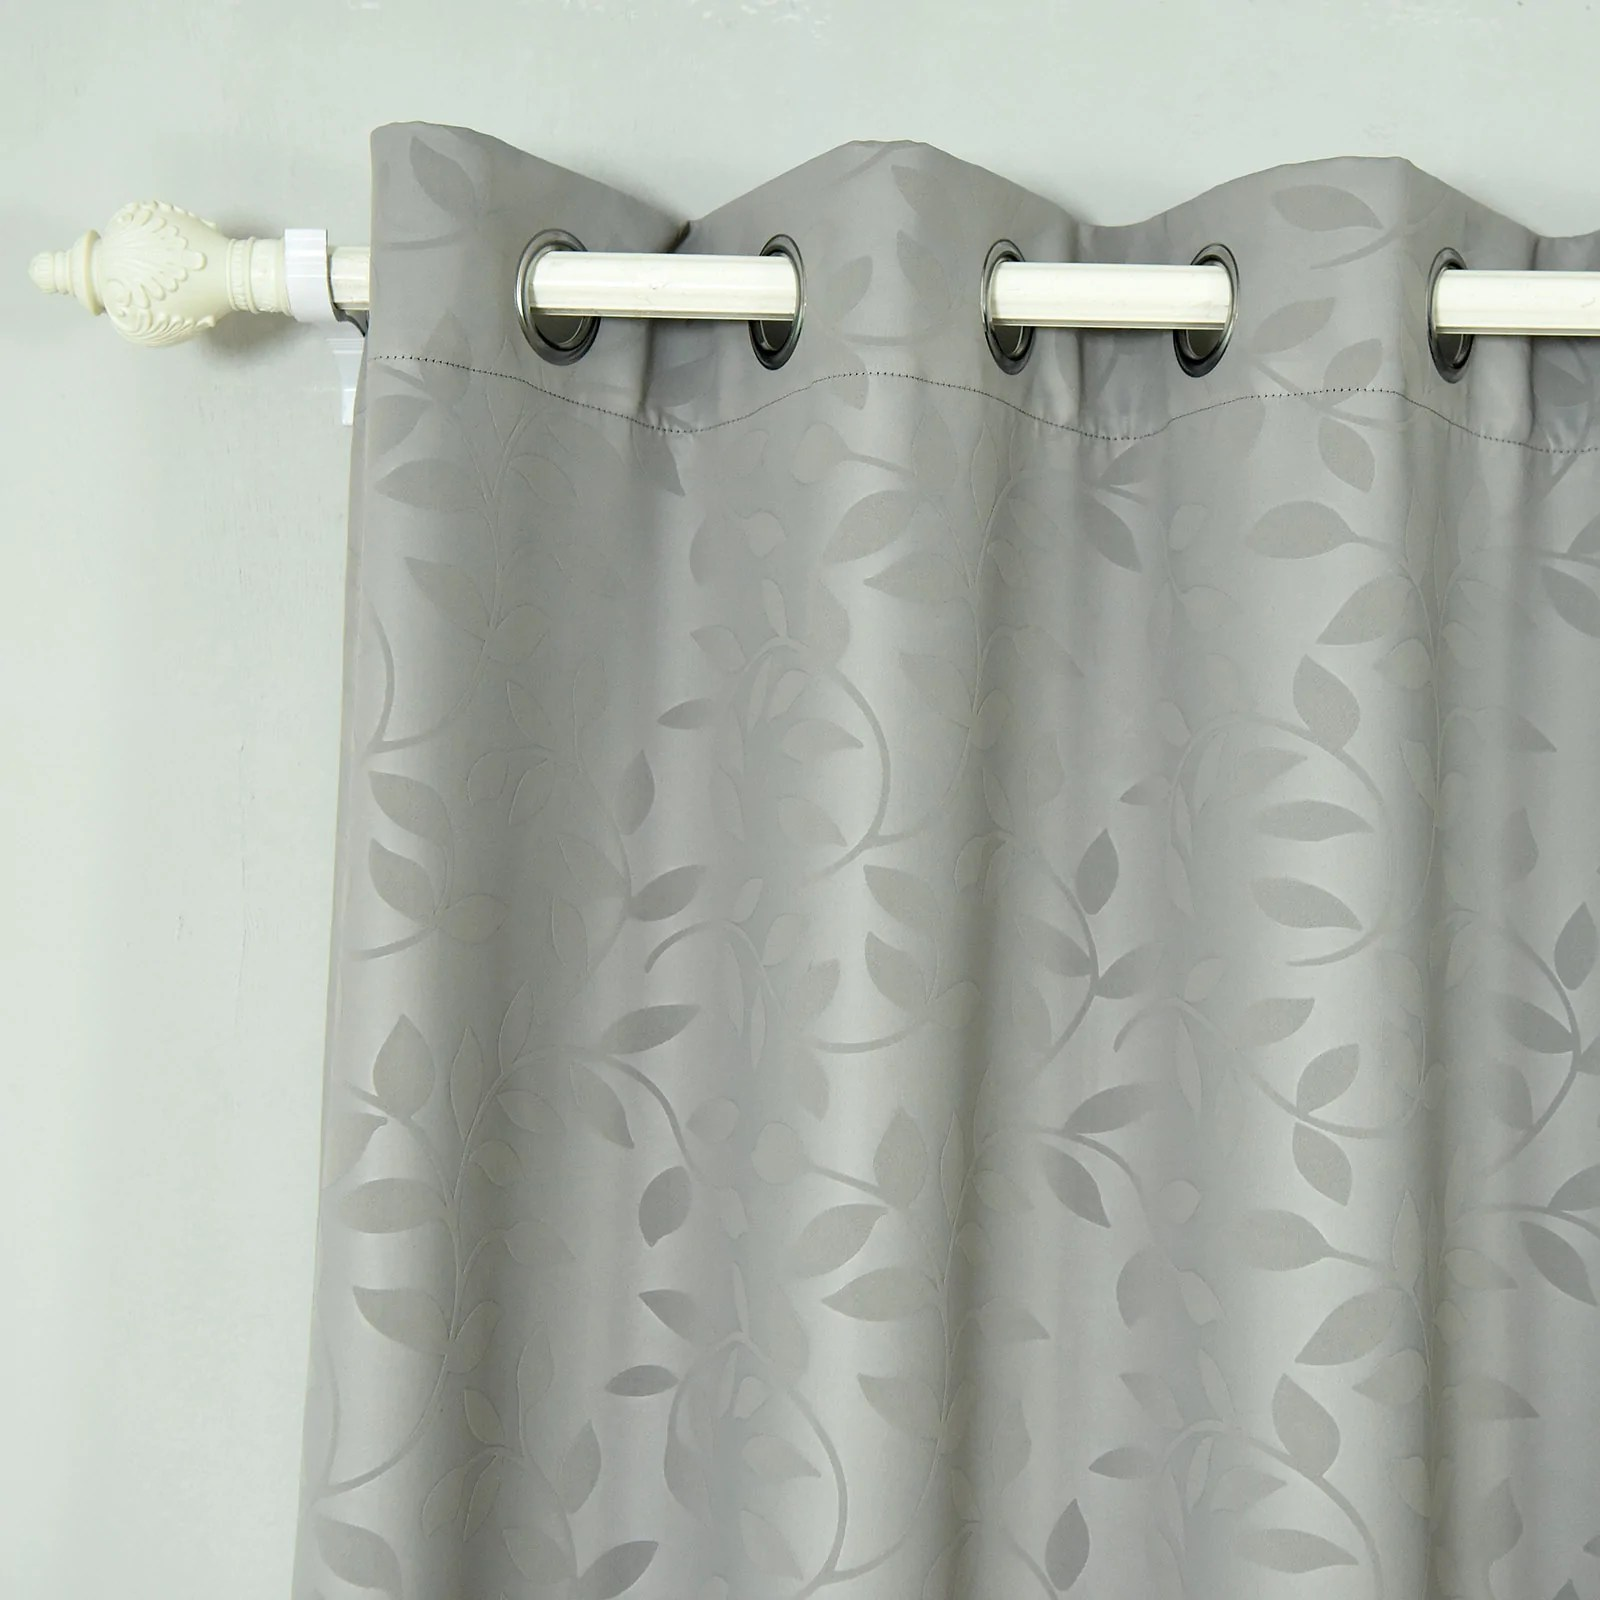 Curtains Pelmets 2 Blackout Thermal Insulated Curtains And Grommet Window Treatment Drapes 52x64 Home Furniture Diy Breadcrumbs Ie